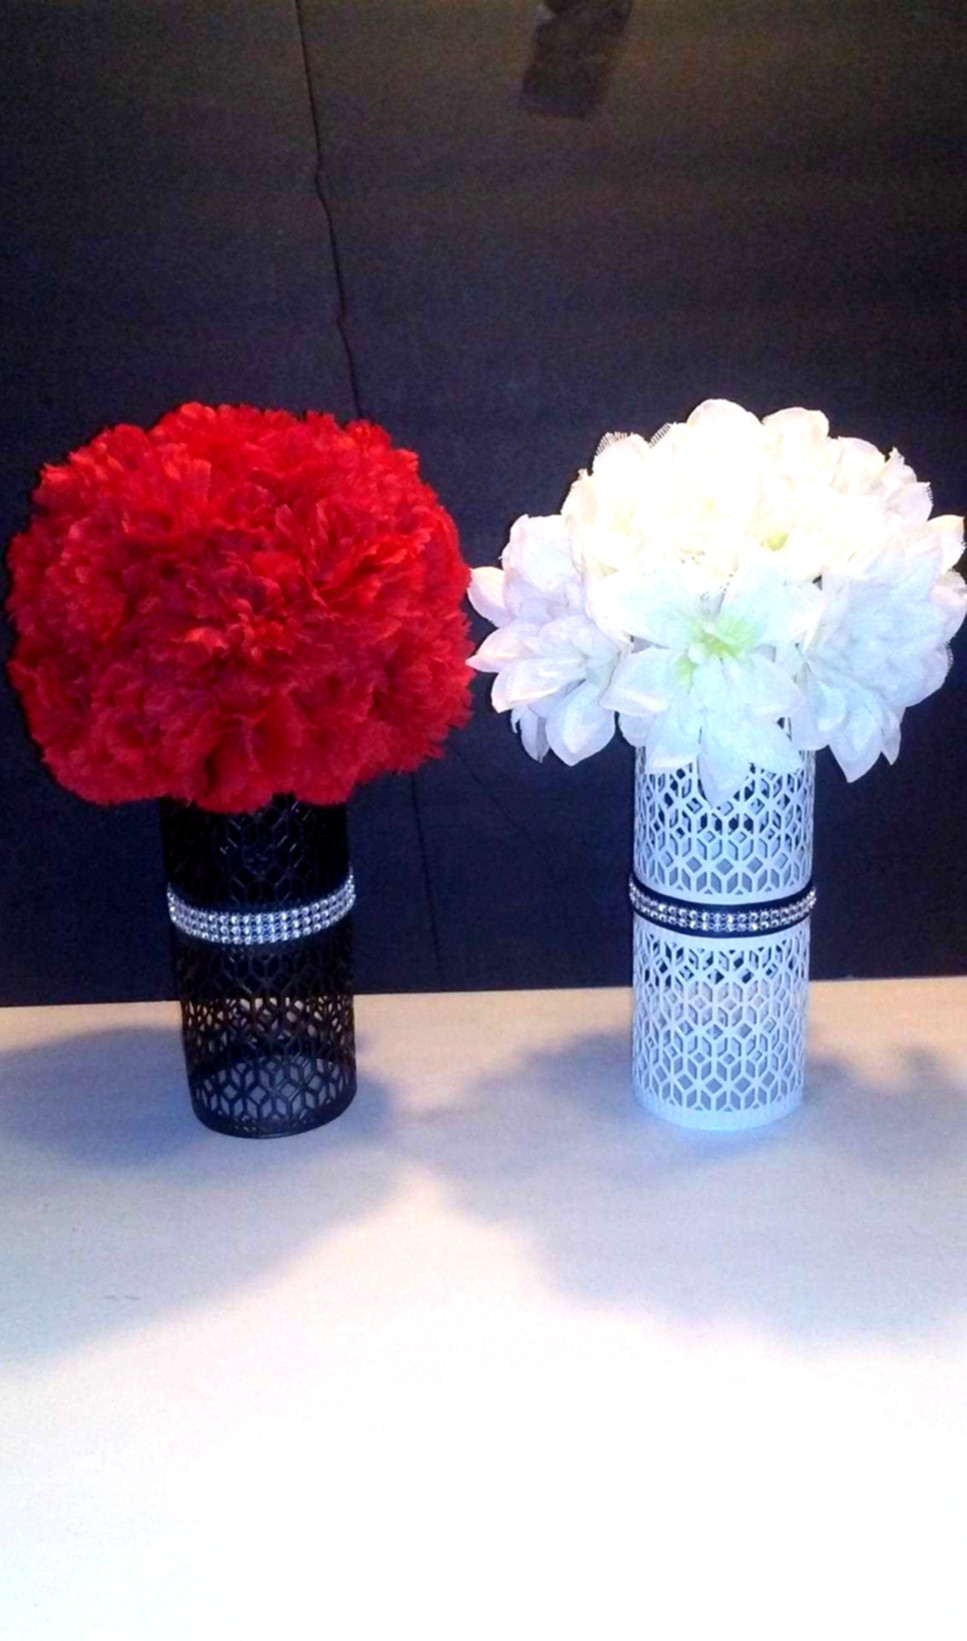 cheap glass hurricane vases of wife on a budget dollar tree hurricane vases dollar tree vases in wife on a budget dollar tree hurricane vases dollar tree vases pictures